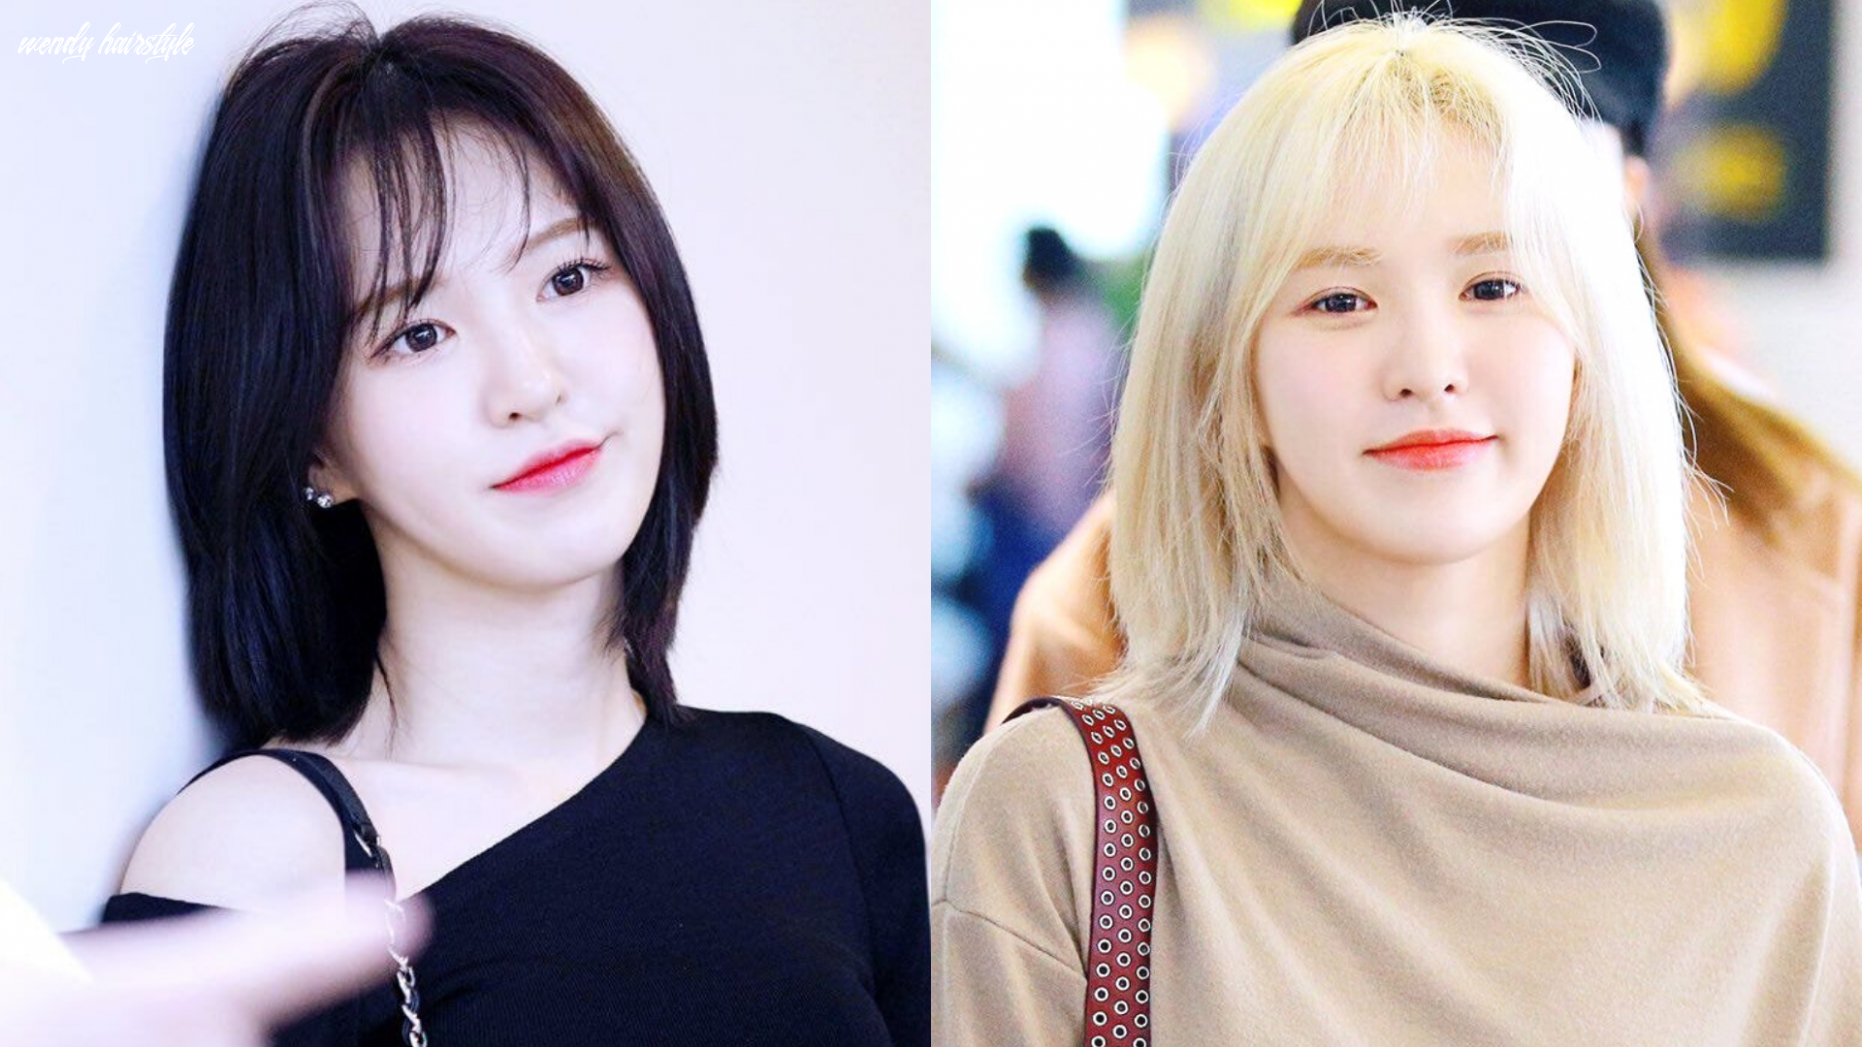 Red velvet wendy short hair: from black to blonde her visual is